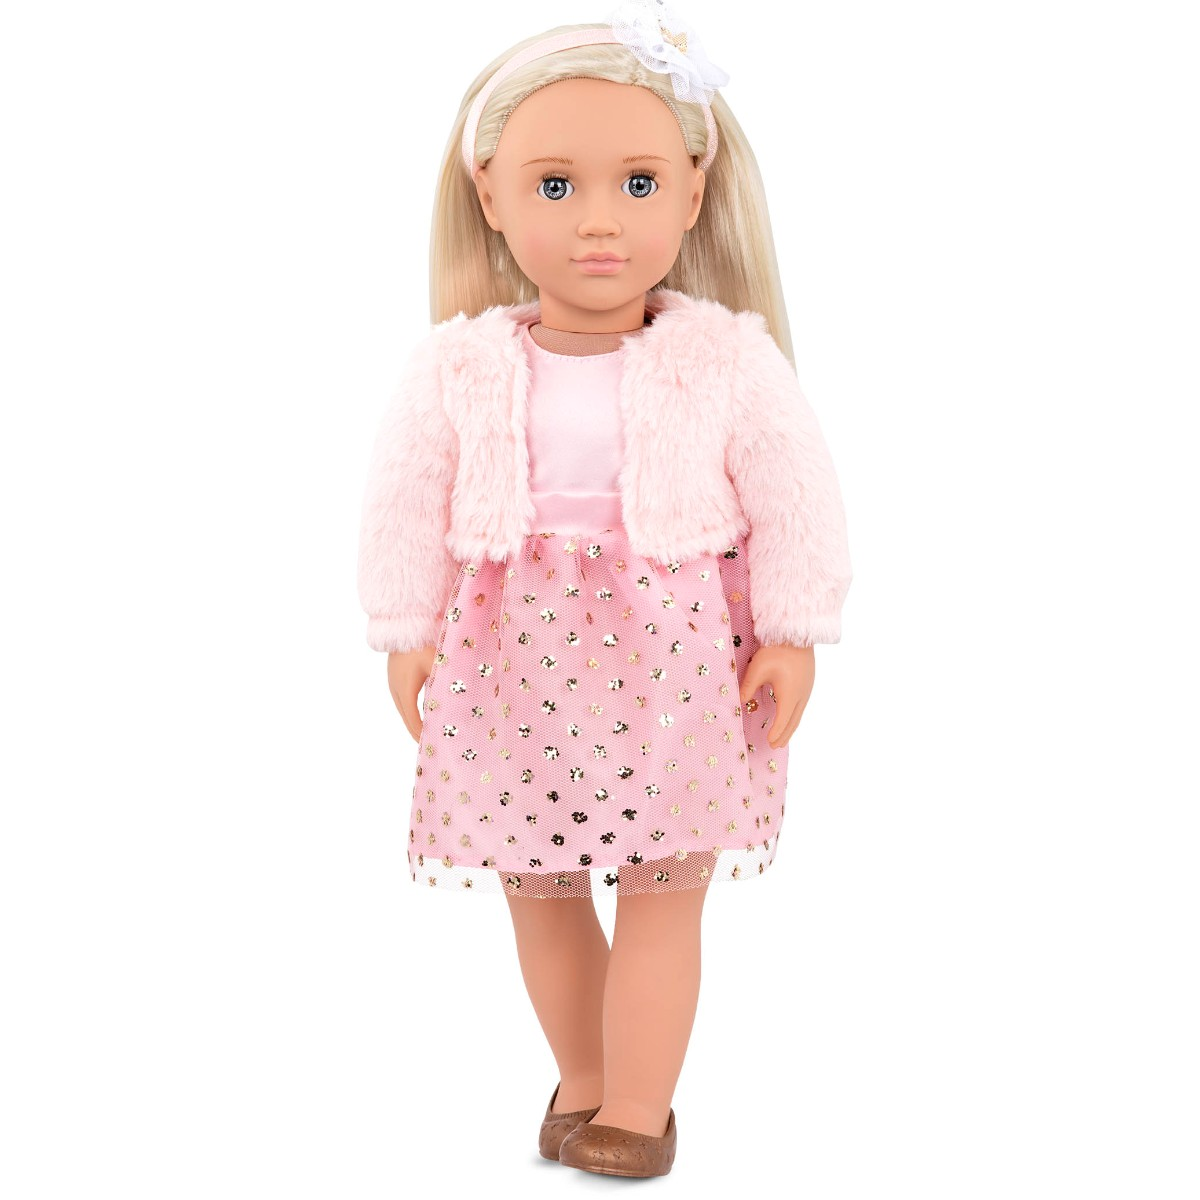 Our Generation - Millie Doll (731252)